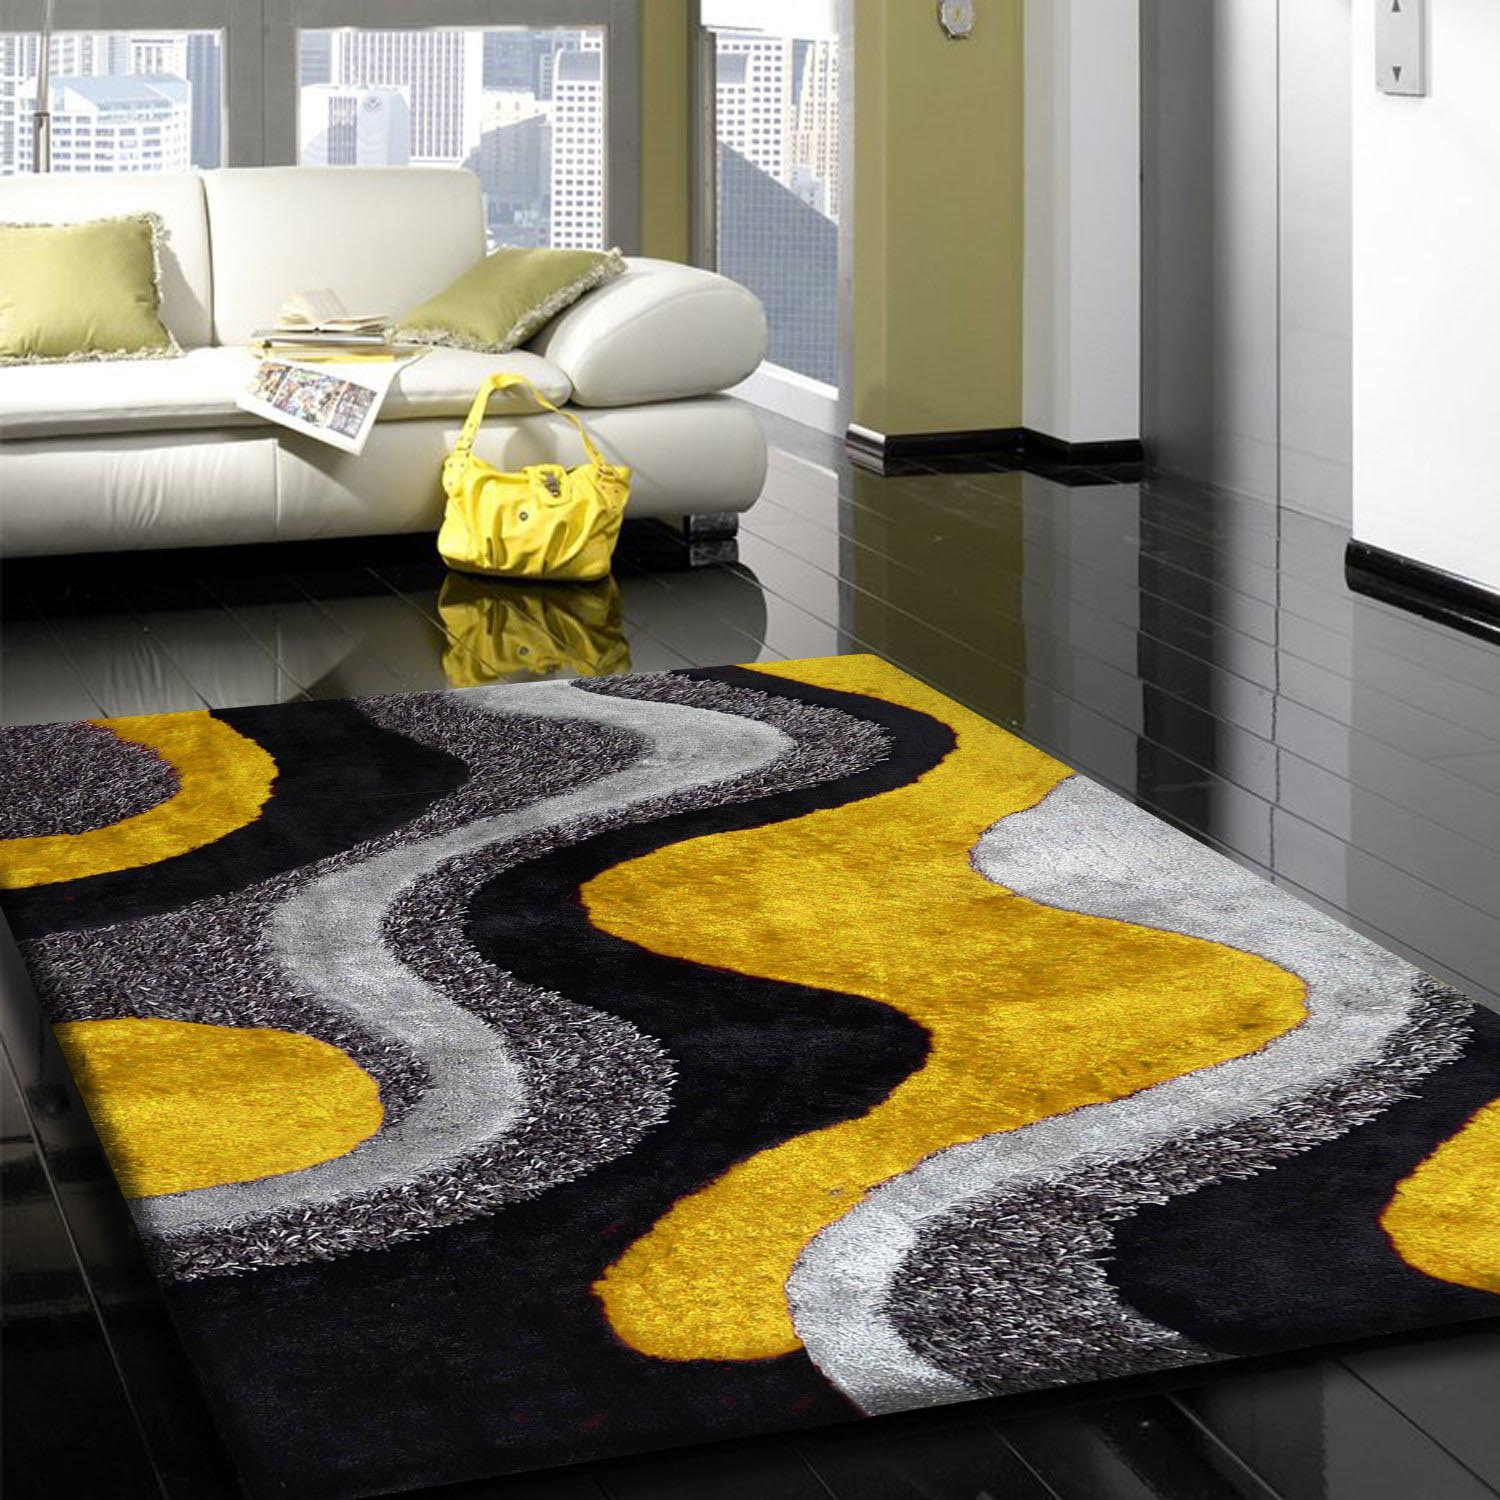 gray and yellow rug best decor things. Black Bedroom Furniture Sets. Home Design Ideas